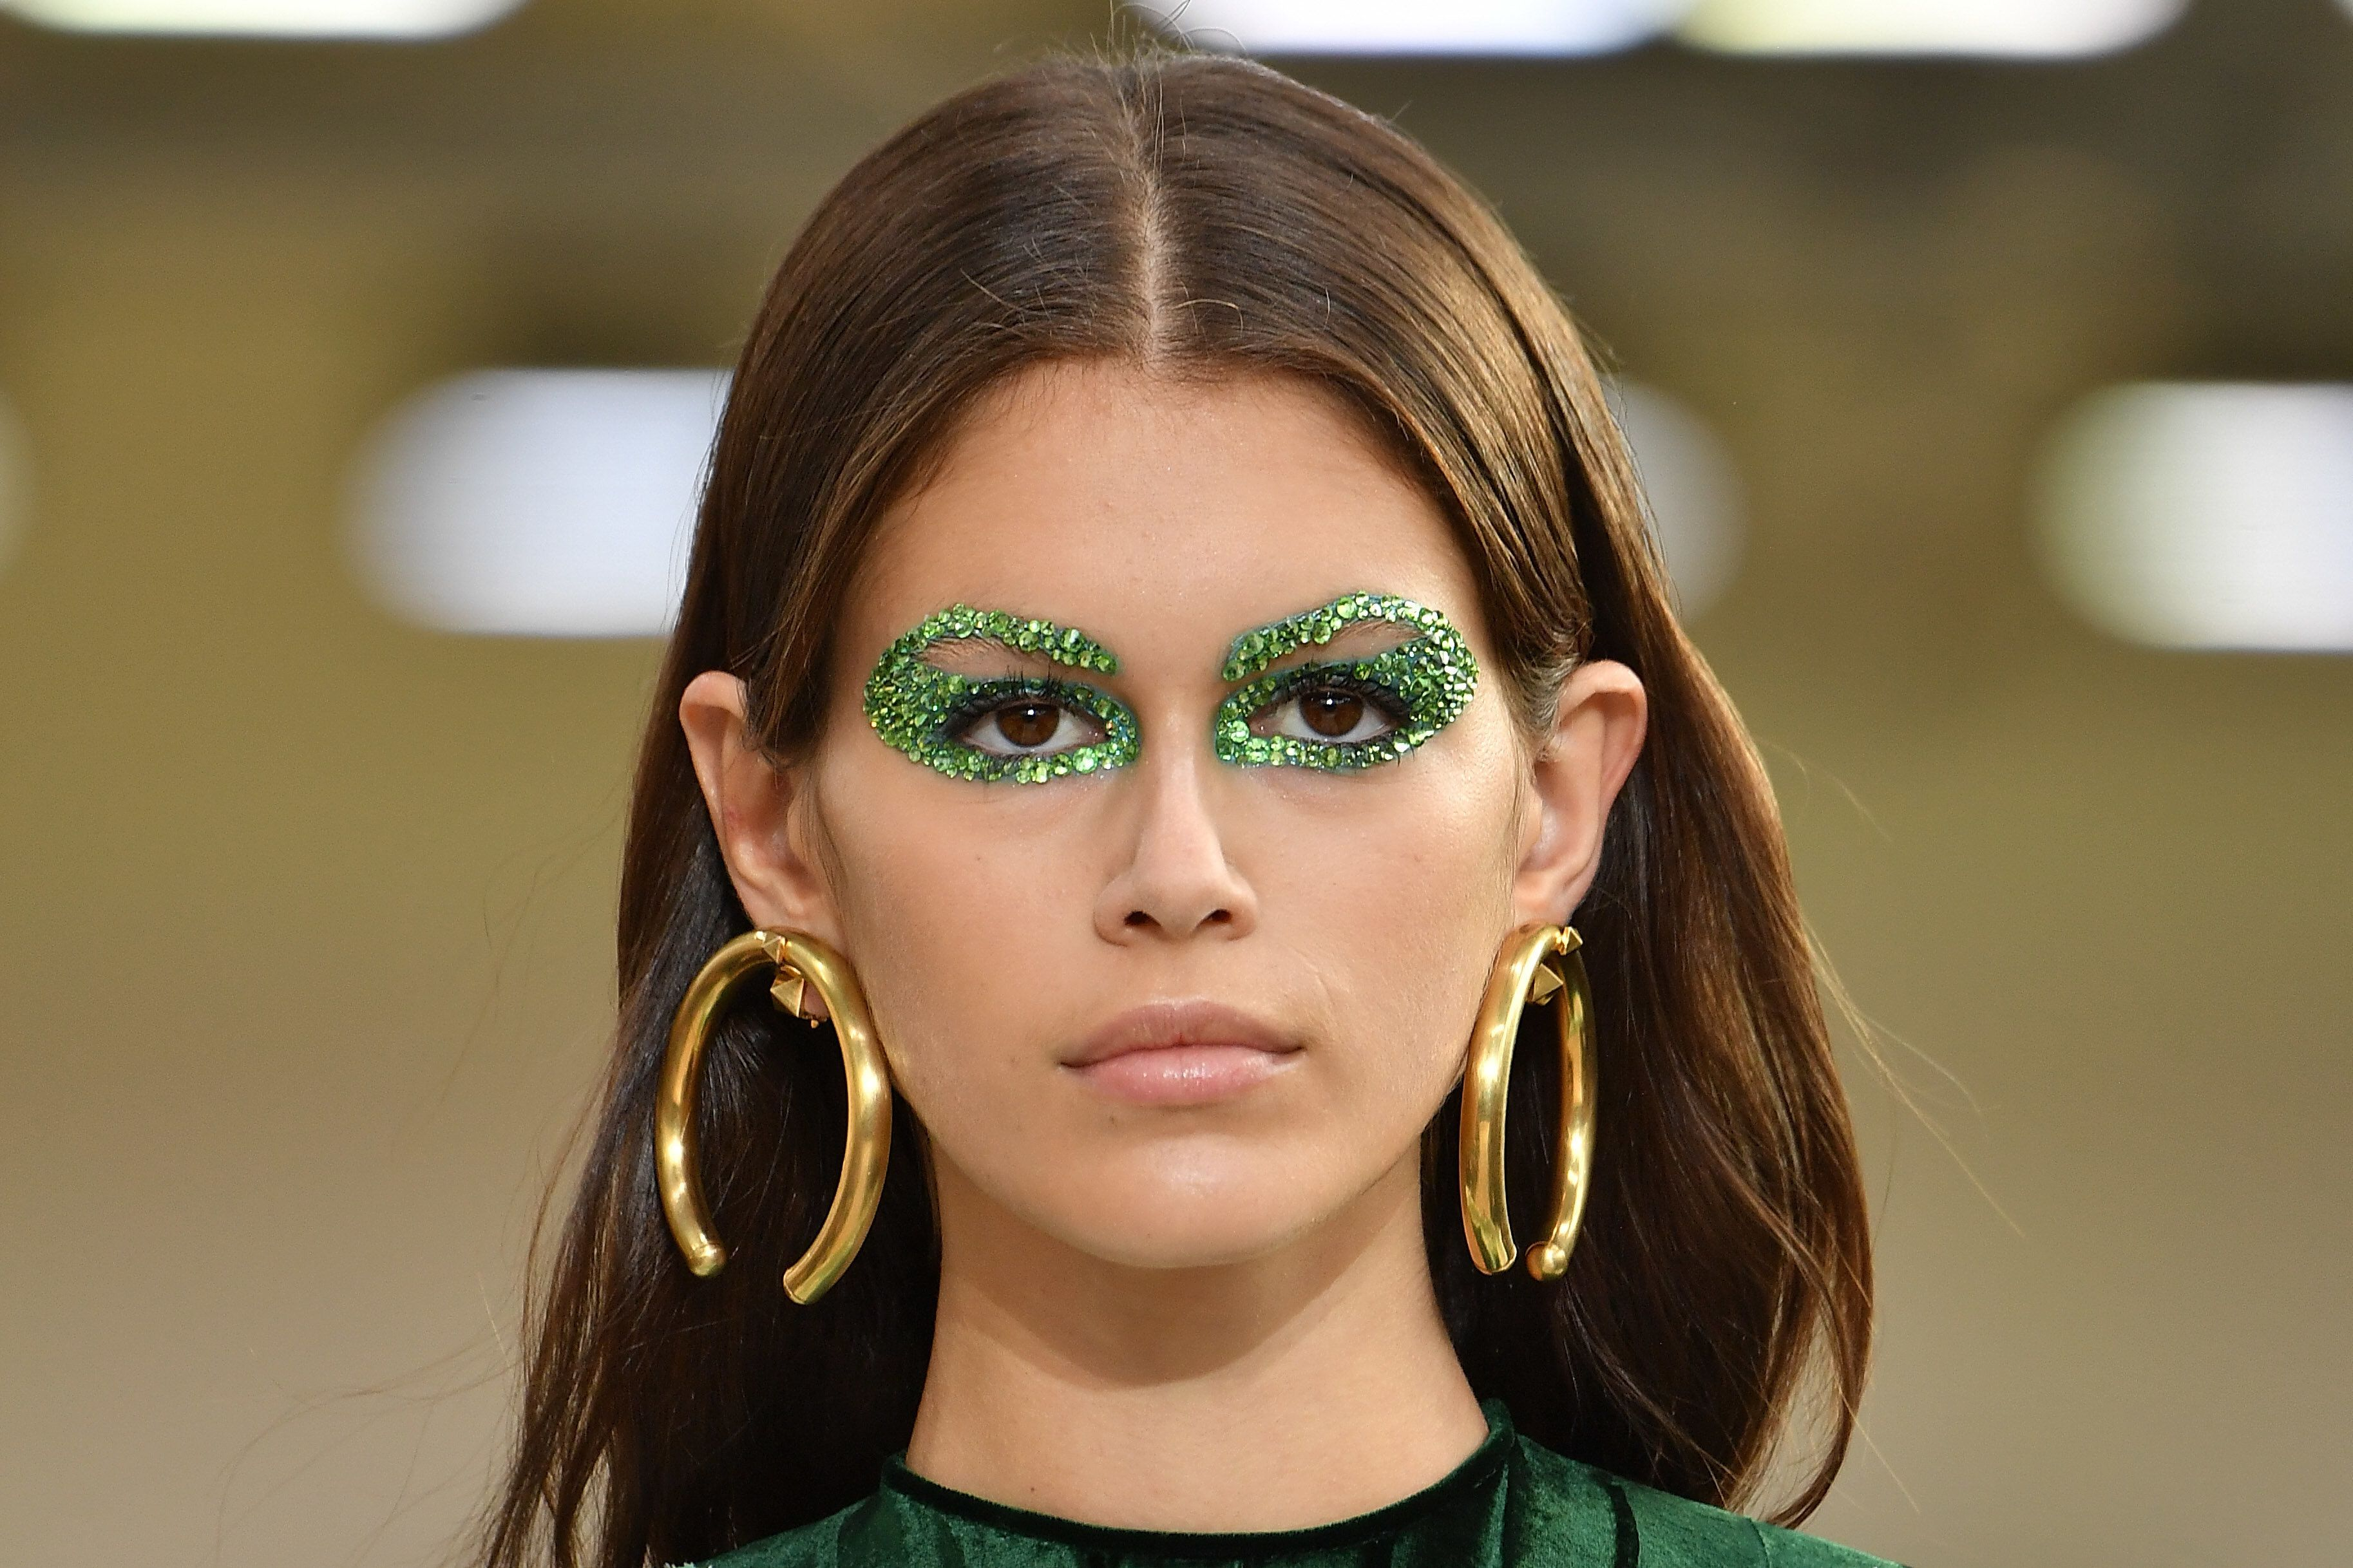 Kaia Gerber walking the runway with some very glittery eye makeup at the Valentino spring 2019 show in Paris.